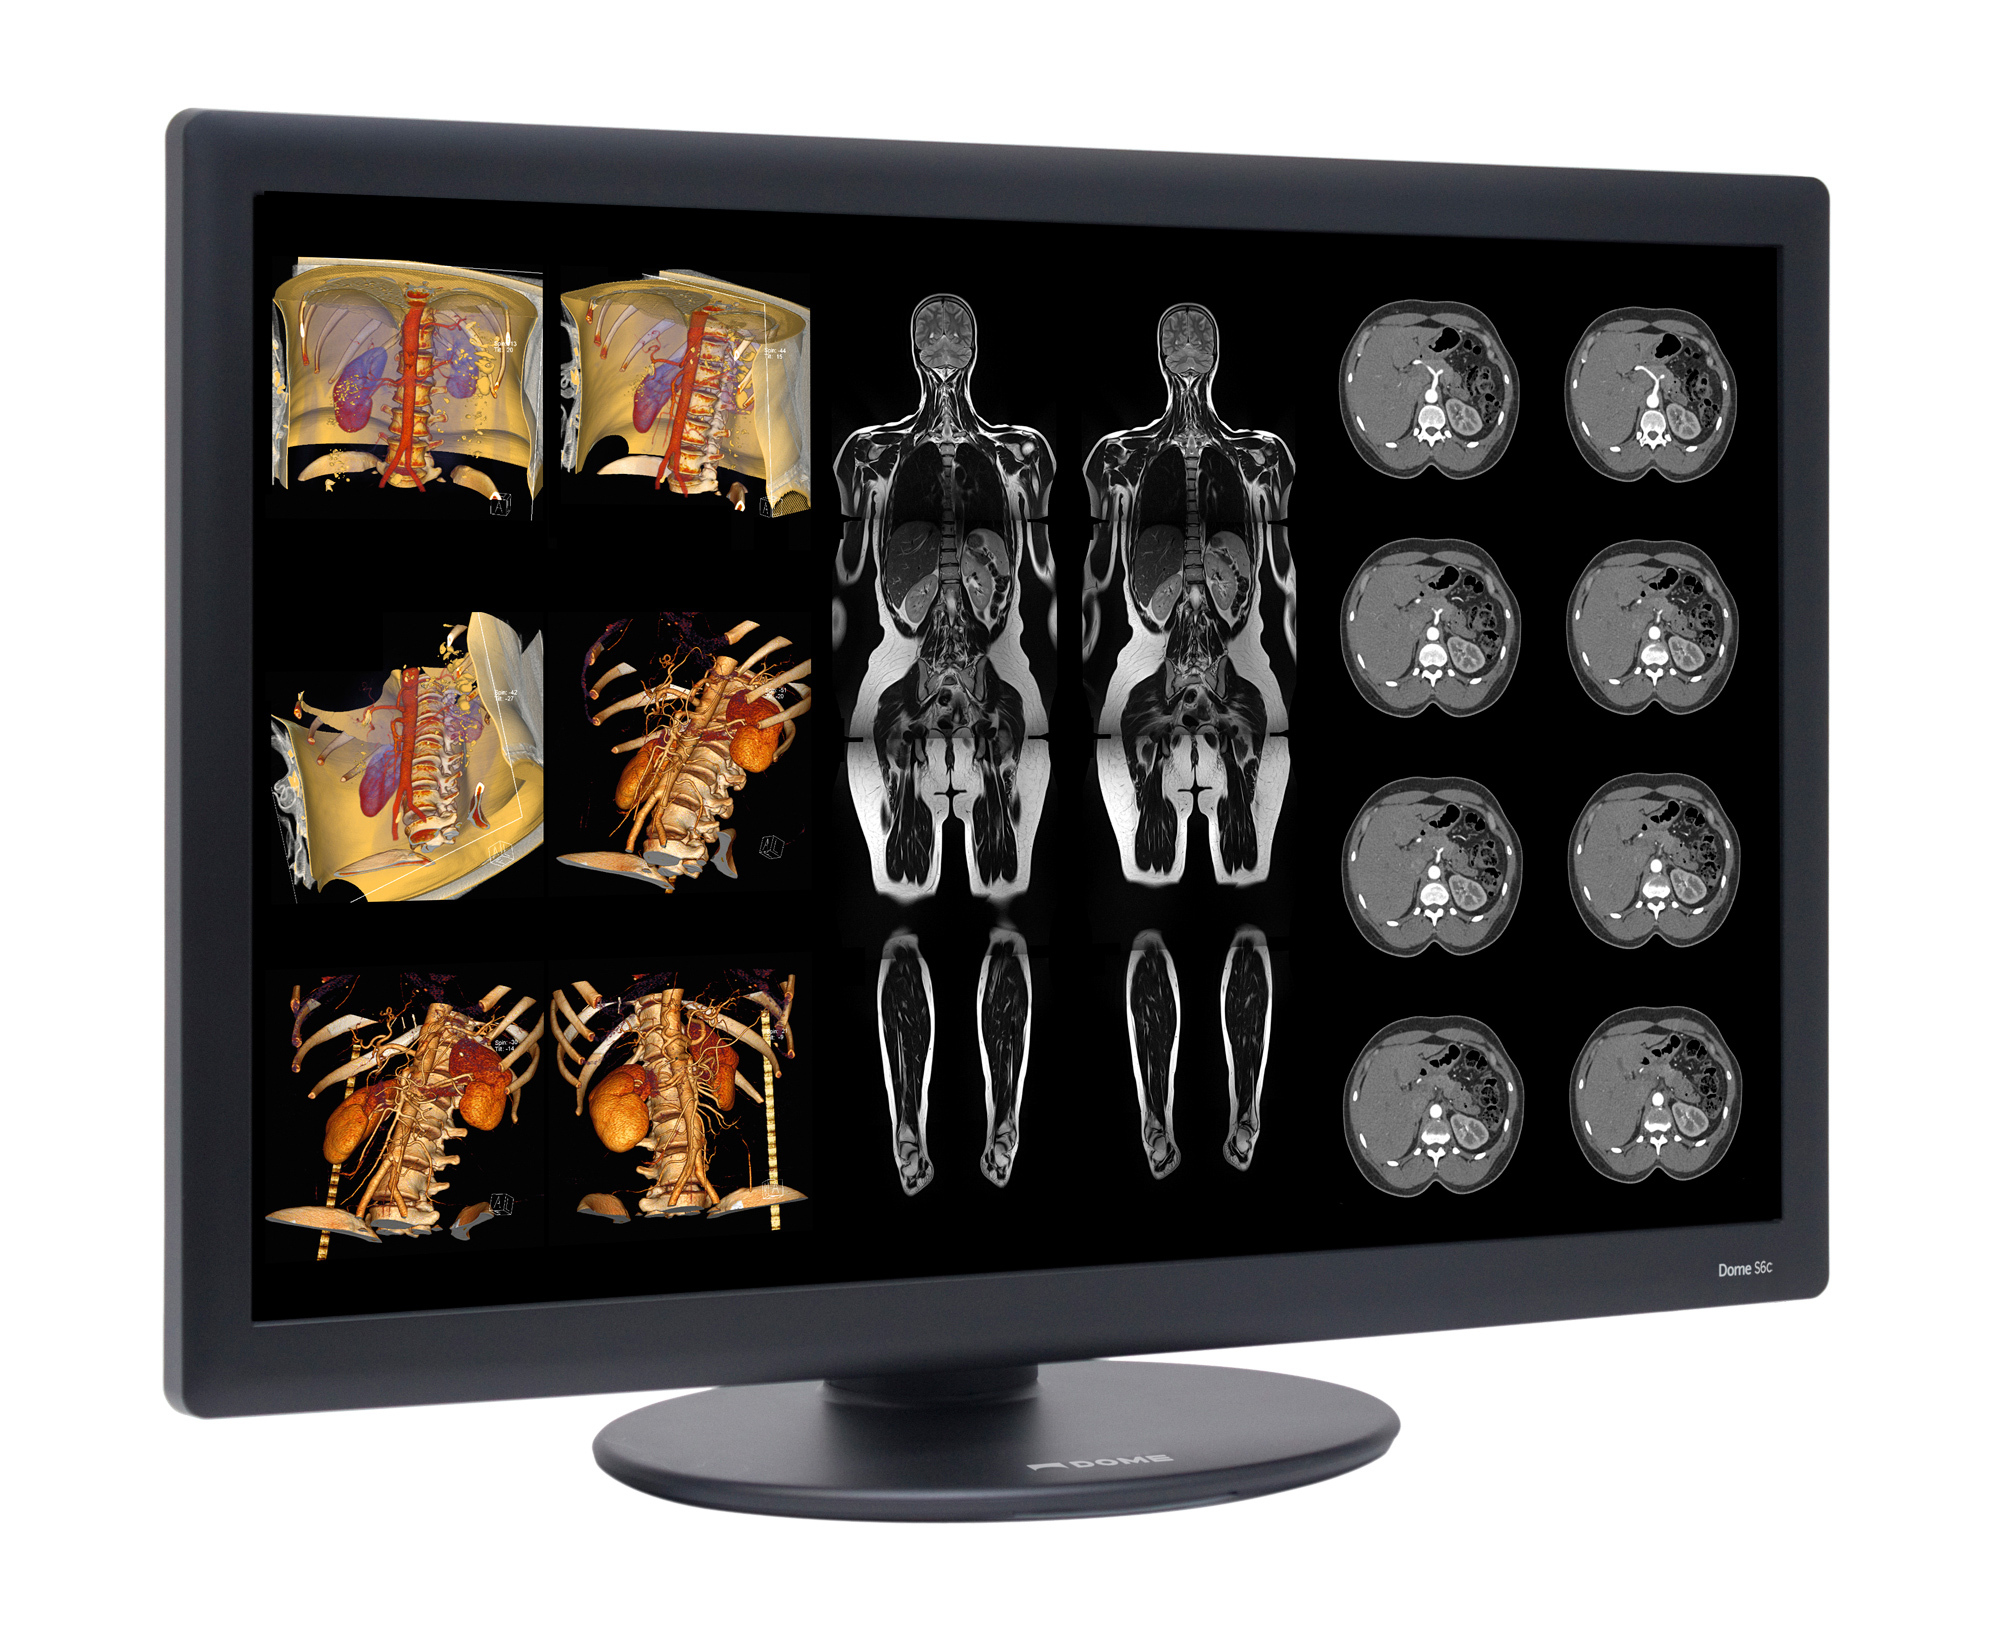 Dome S6c Widescreen 6MP Radiology Display (Photo: Business Wire)